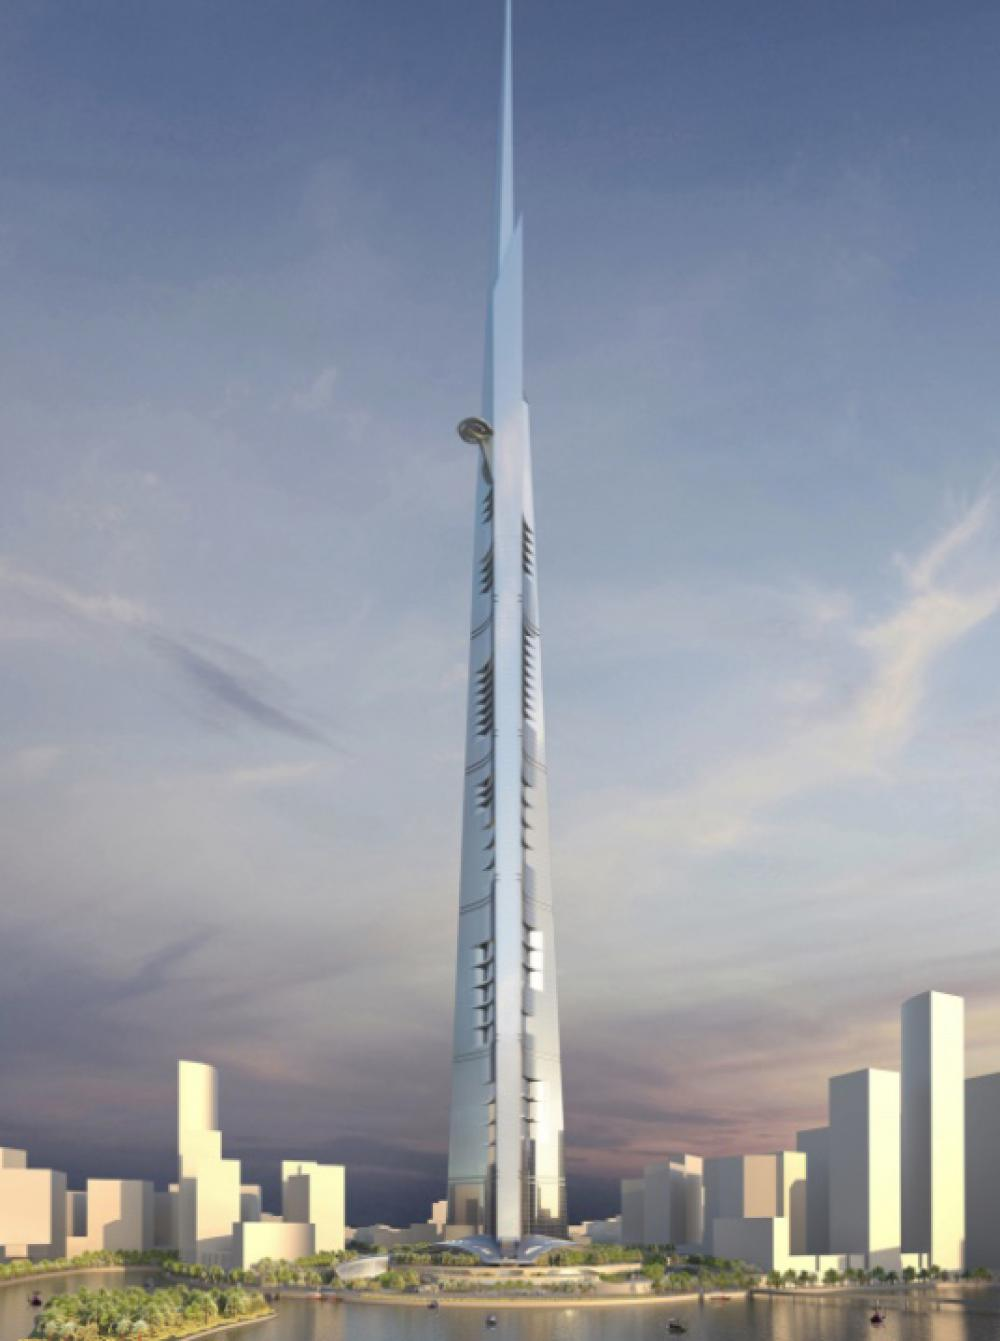 Figure 1. Jeddah Tower. Reprinted from Smith and Gills. http://smithgill.com/work/ jeddah_tower/